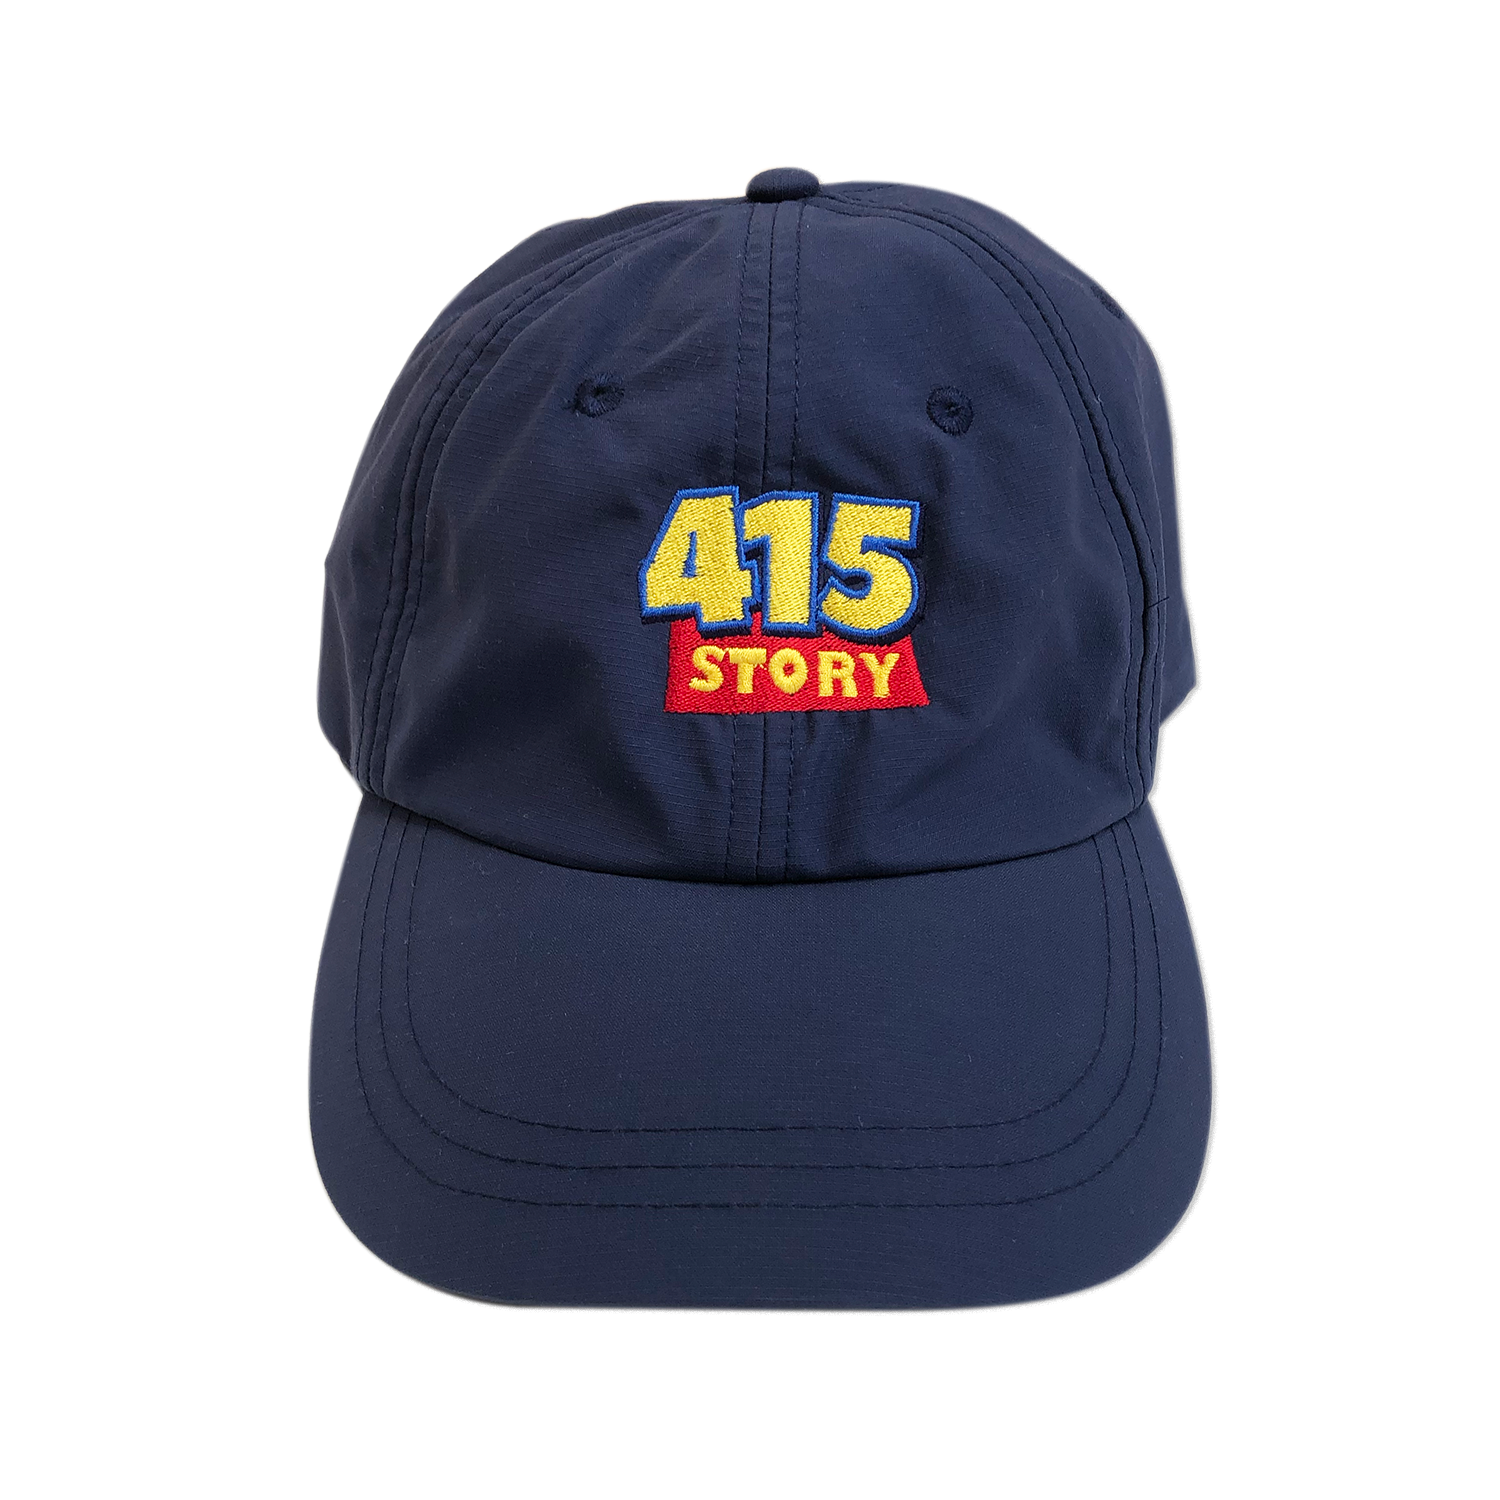 Casquette 415 Story